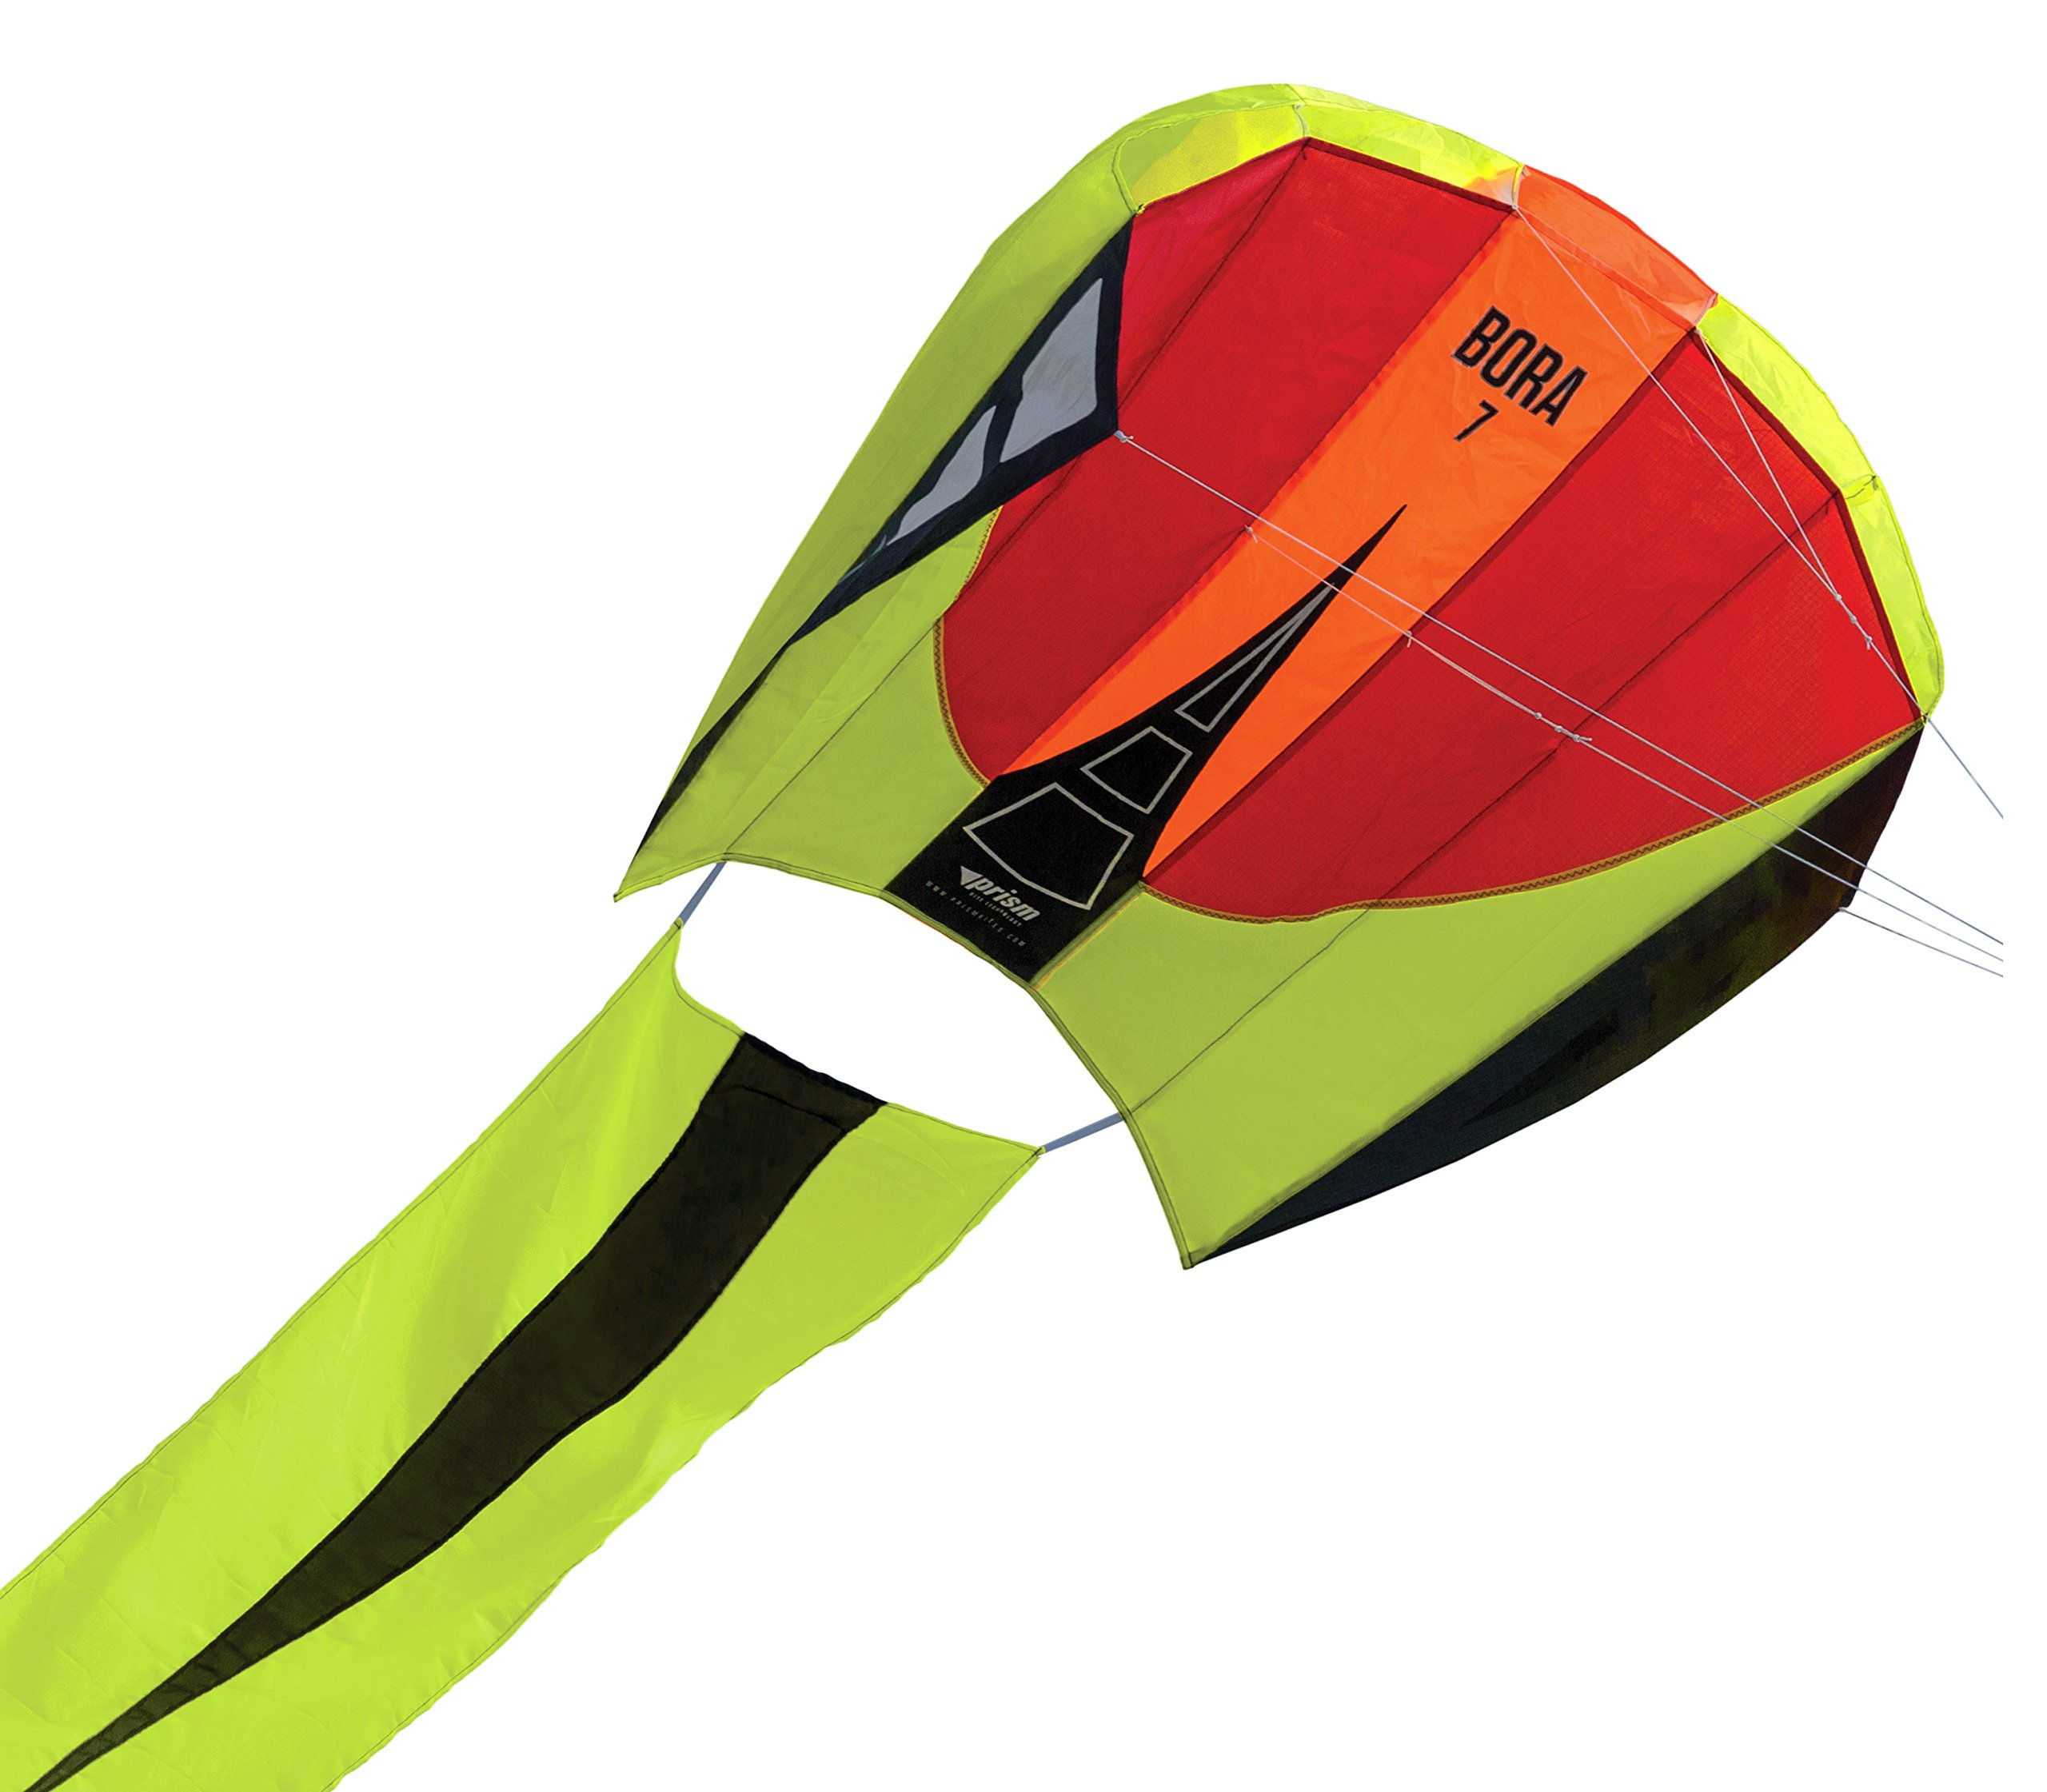 Prism Bora 7 Single-line Parafoil Kite, Blaze